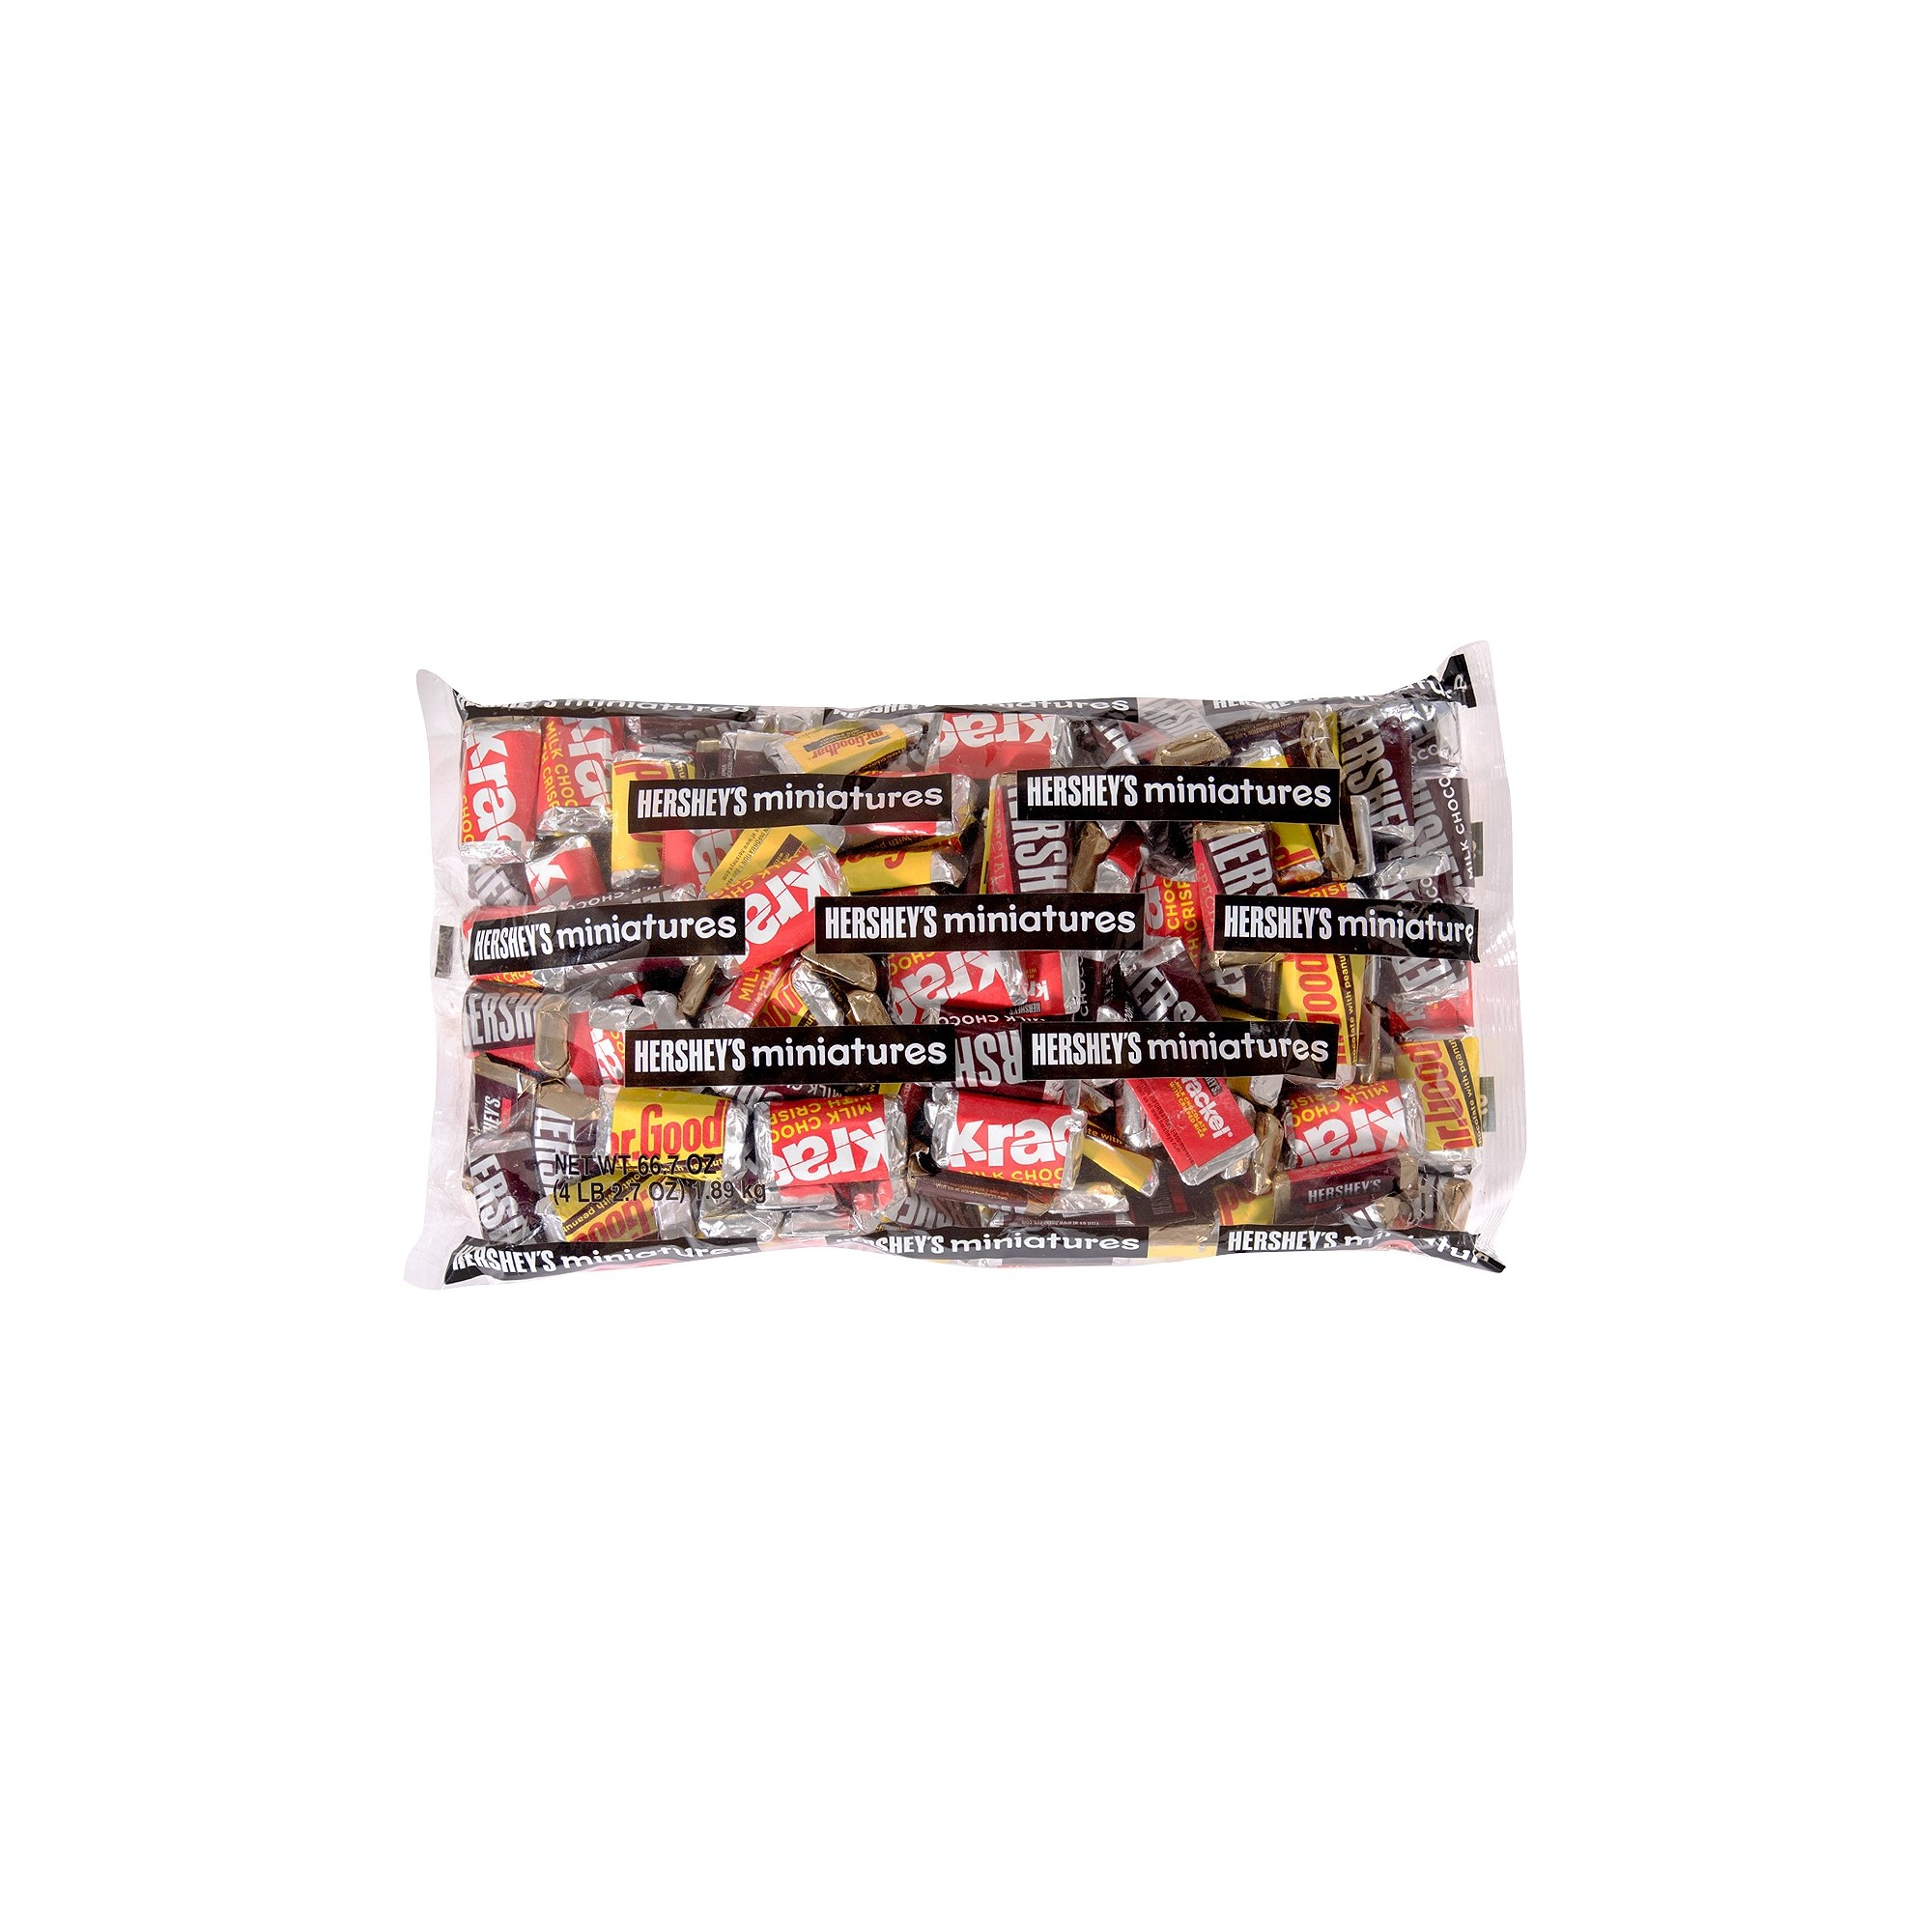 Hershey's Miniatures Variety Bag - 66.7oz